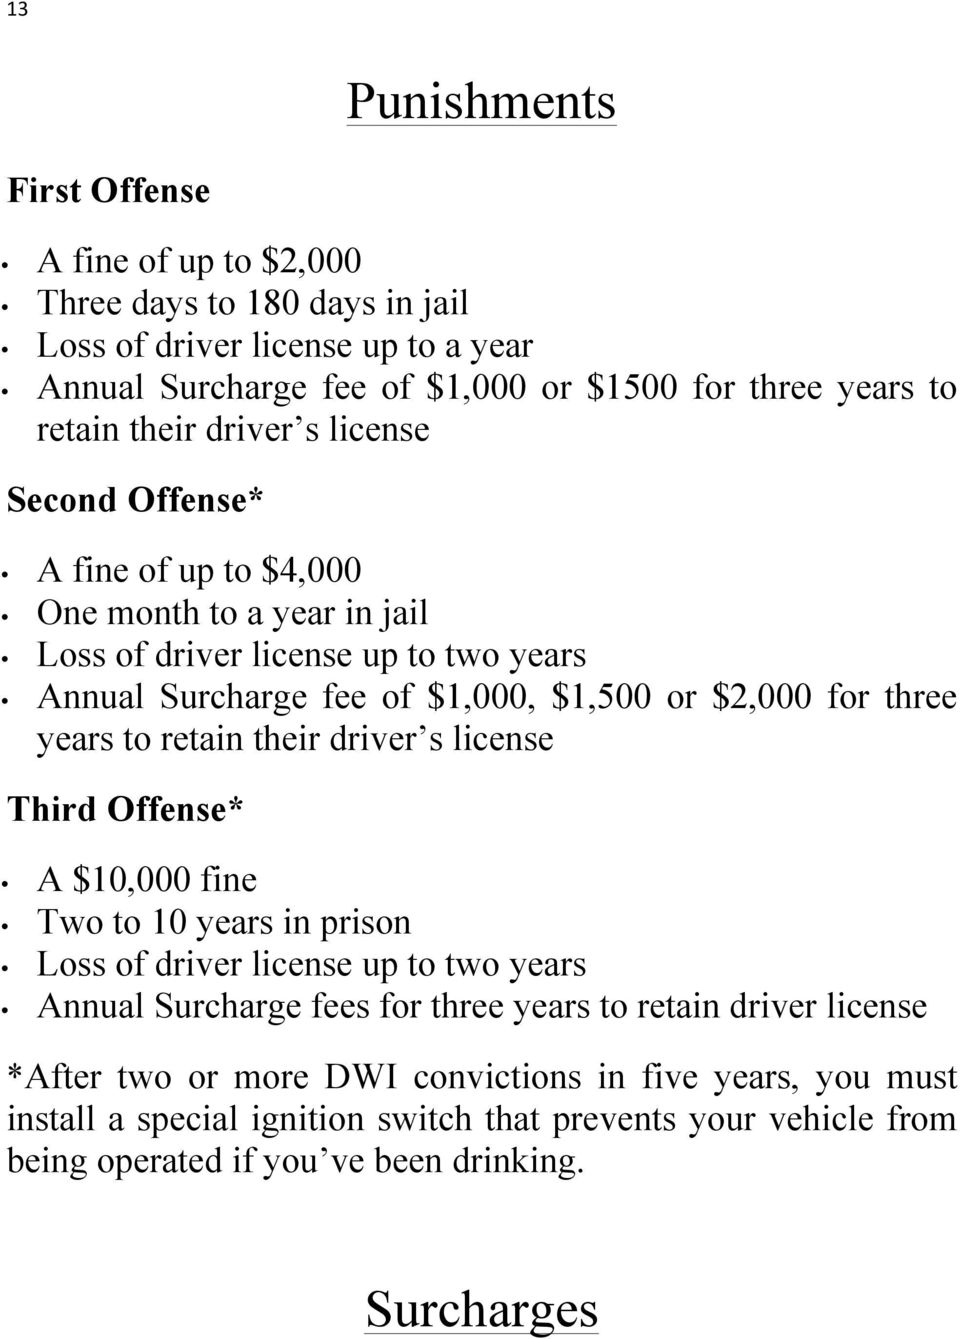 three years to retain their driver s license Third Offense* A $10,000 fine Two to 10 years in prison Loss of driver license up to two years Annual Surcharge fees for three years to